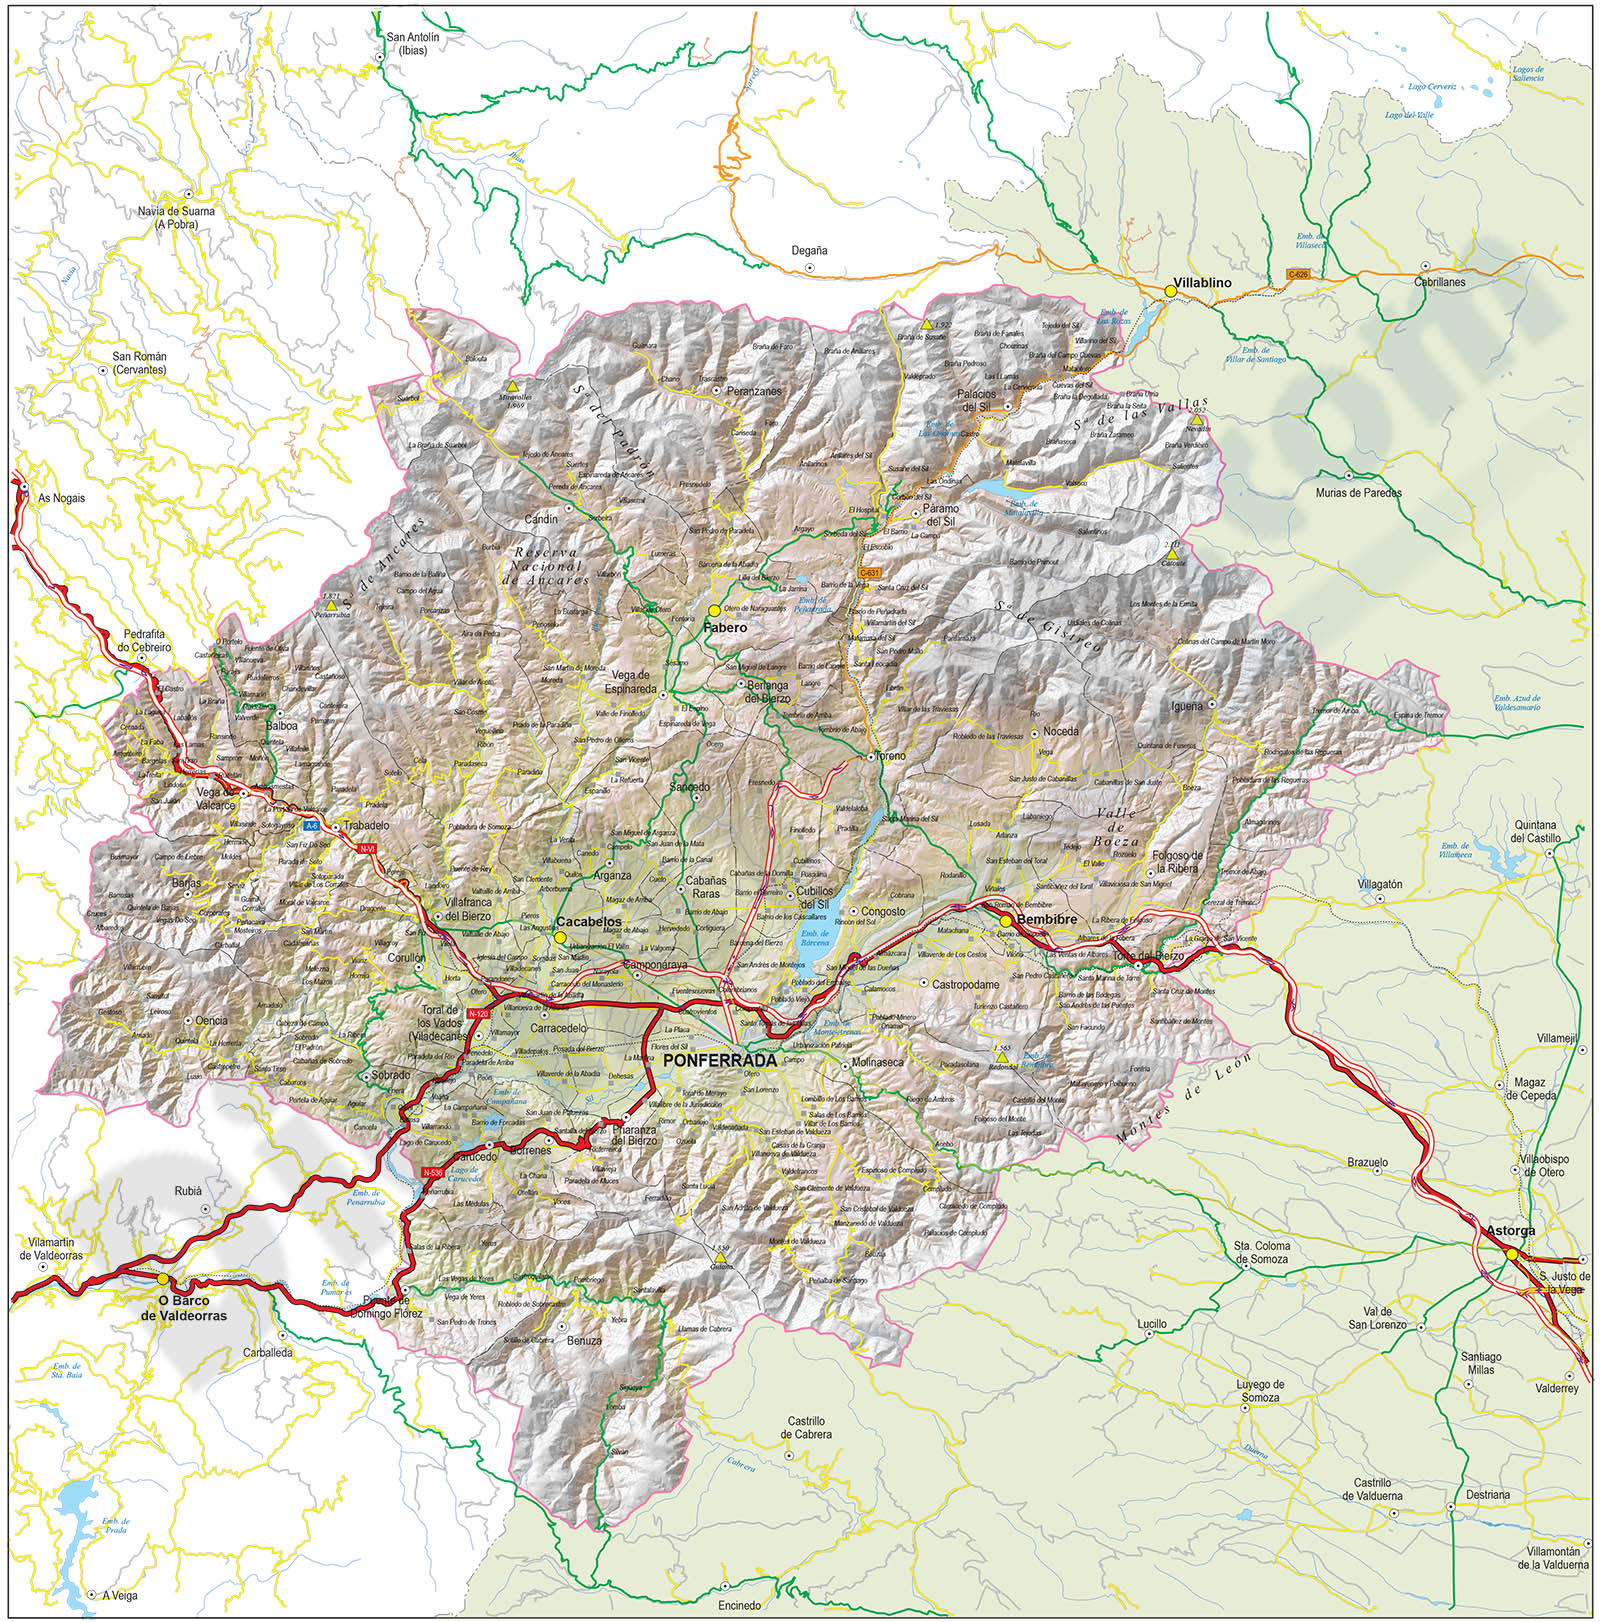 El Bierzo - Map of the Comarca (province of Leon, Spain)